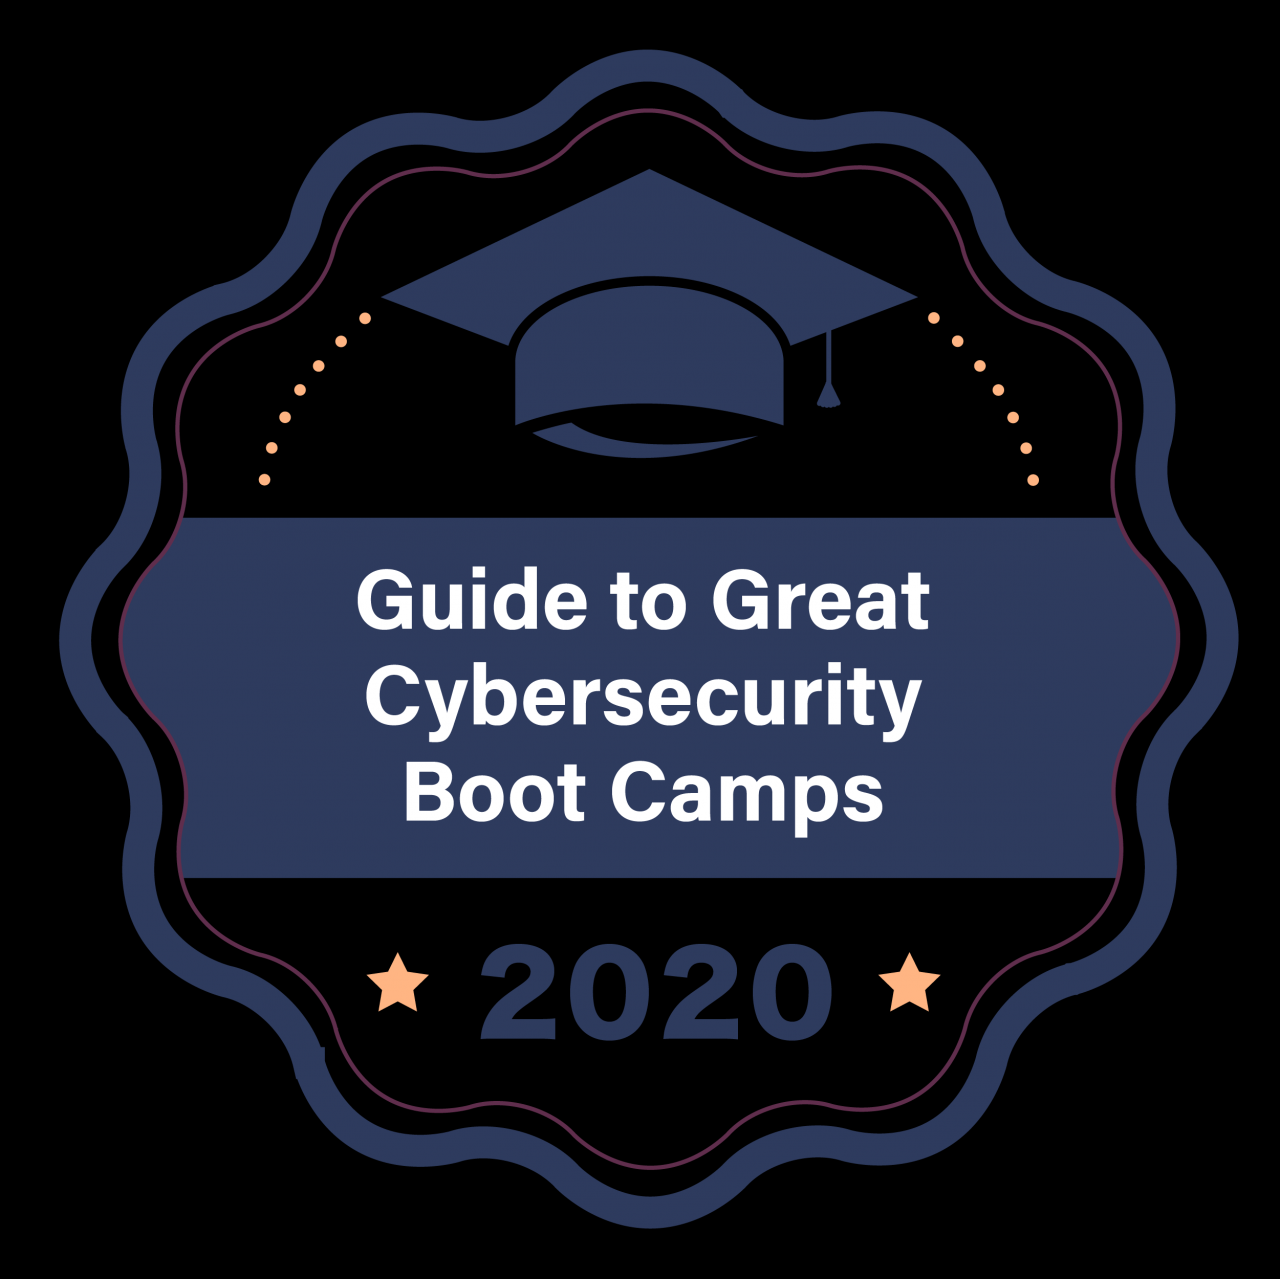 Your Guide to Great Cybersecurity Bootcamps in 2021